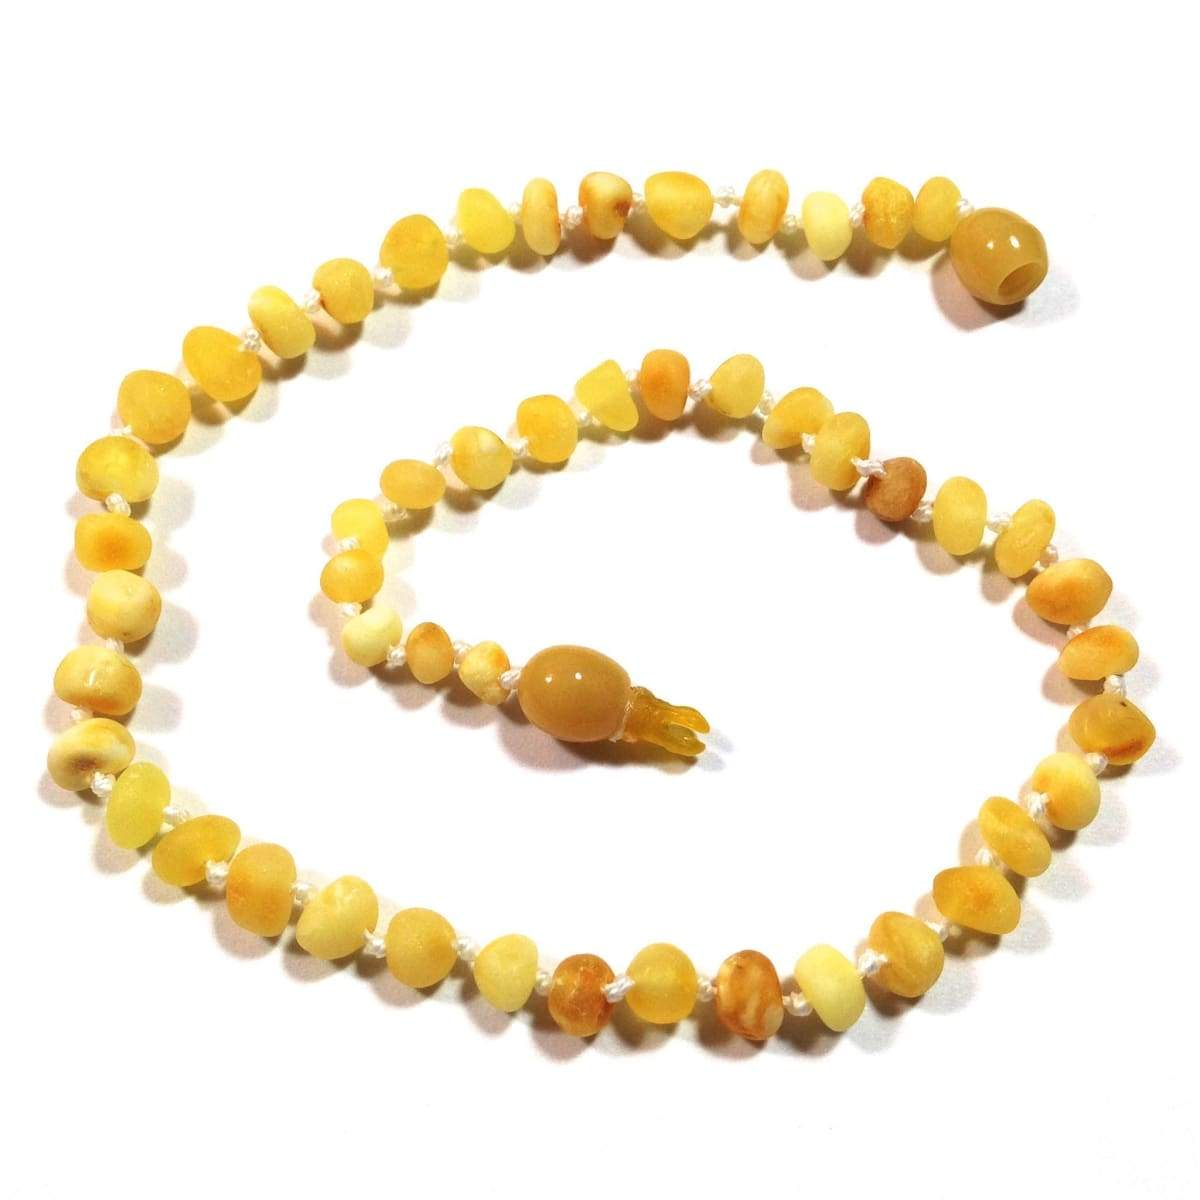 Baltic Amber Super Butter - 12 Necklace - Pop Clasp - Baltic Amber Jewelry